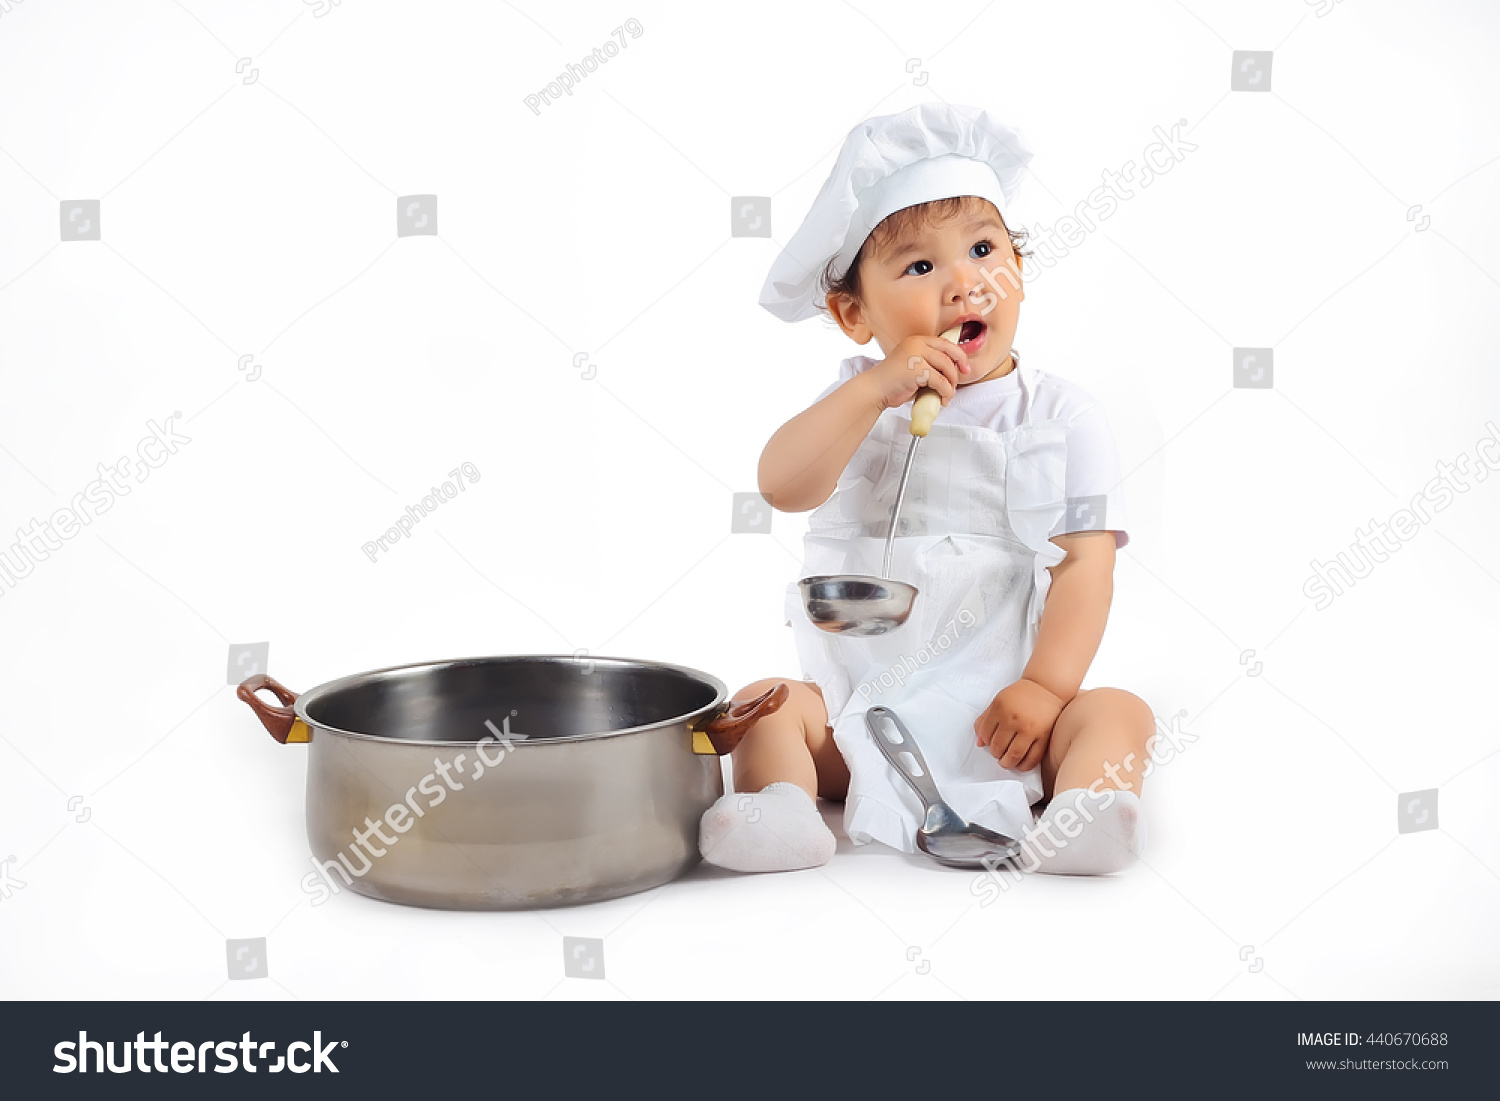 4ee66444823 Little Baby Chefs Hat Ladle Hand Stock Photo (Edit Now) 440670688 ...